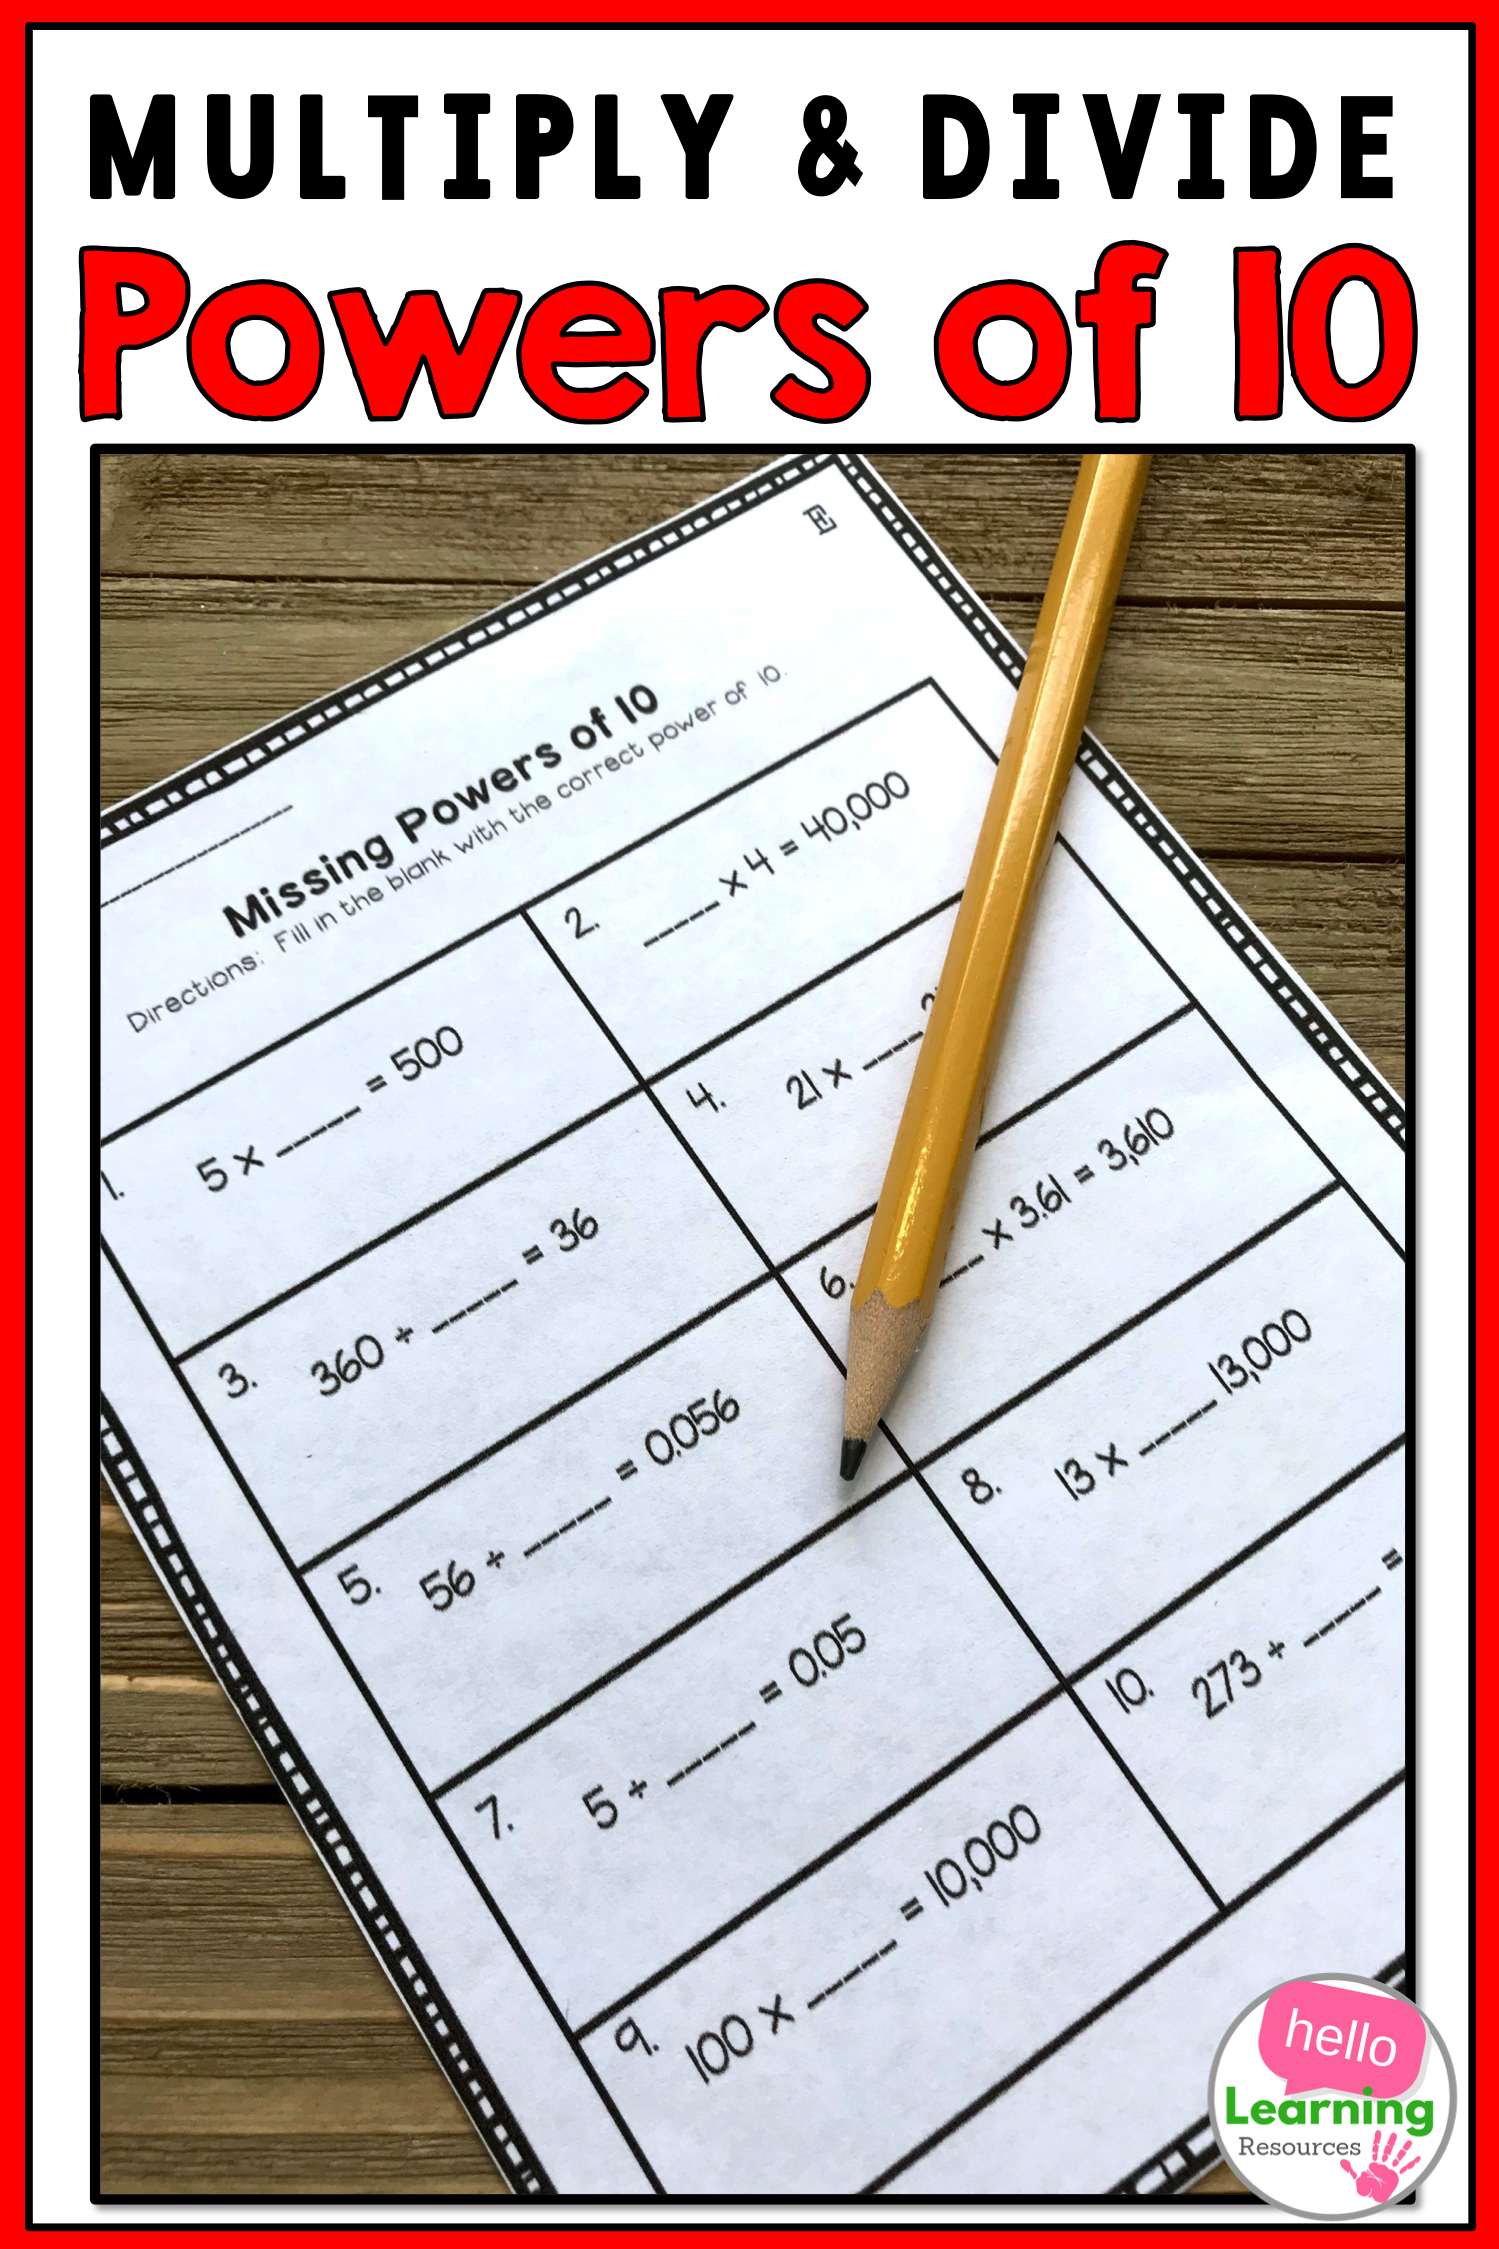 Powers Of 10 Worksheets With Images